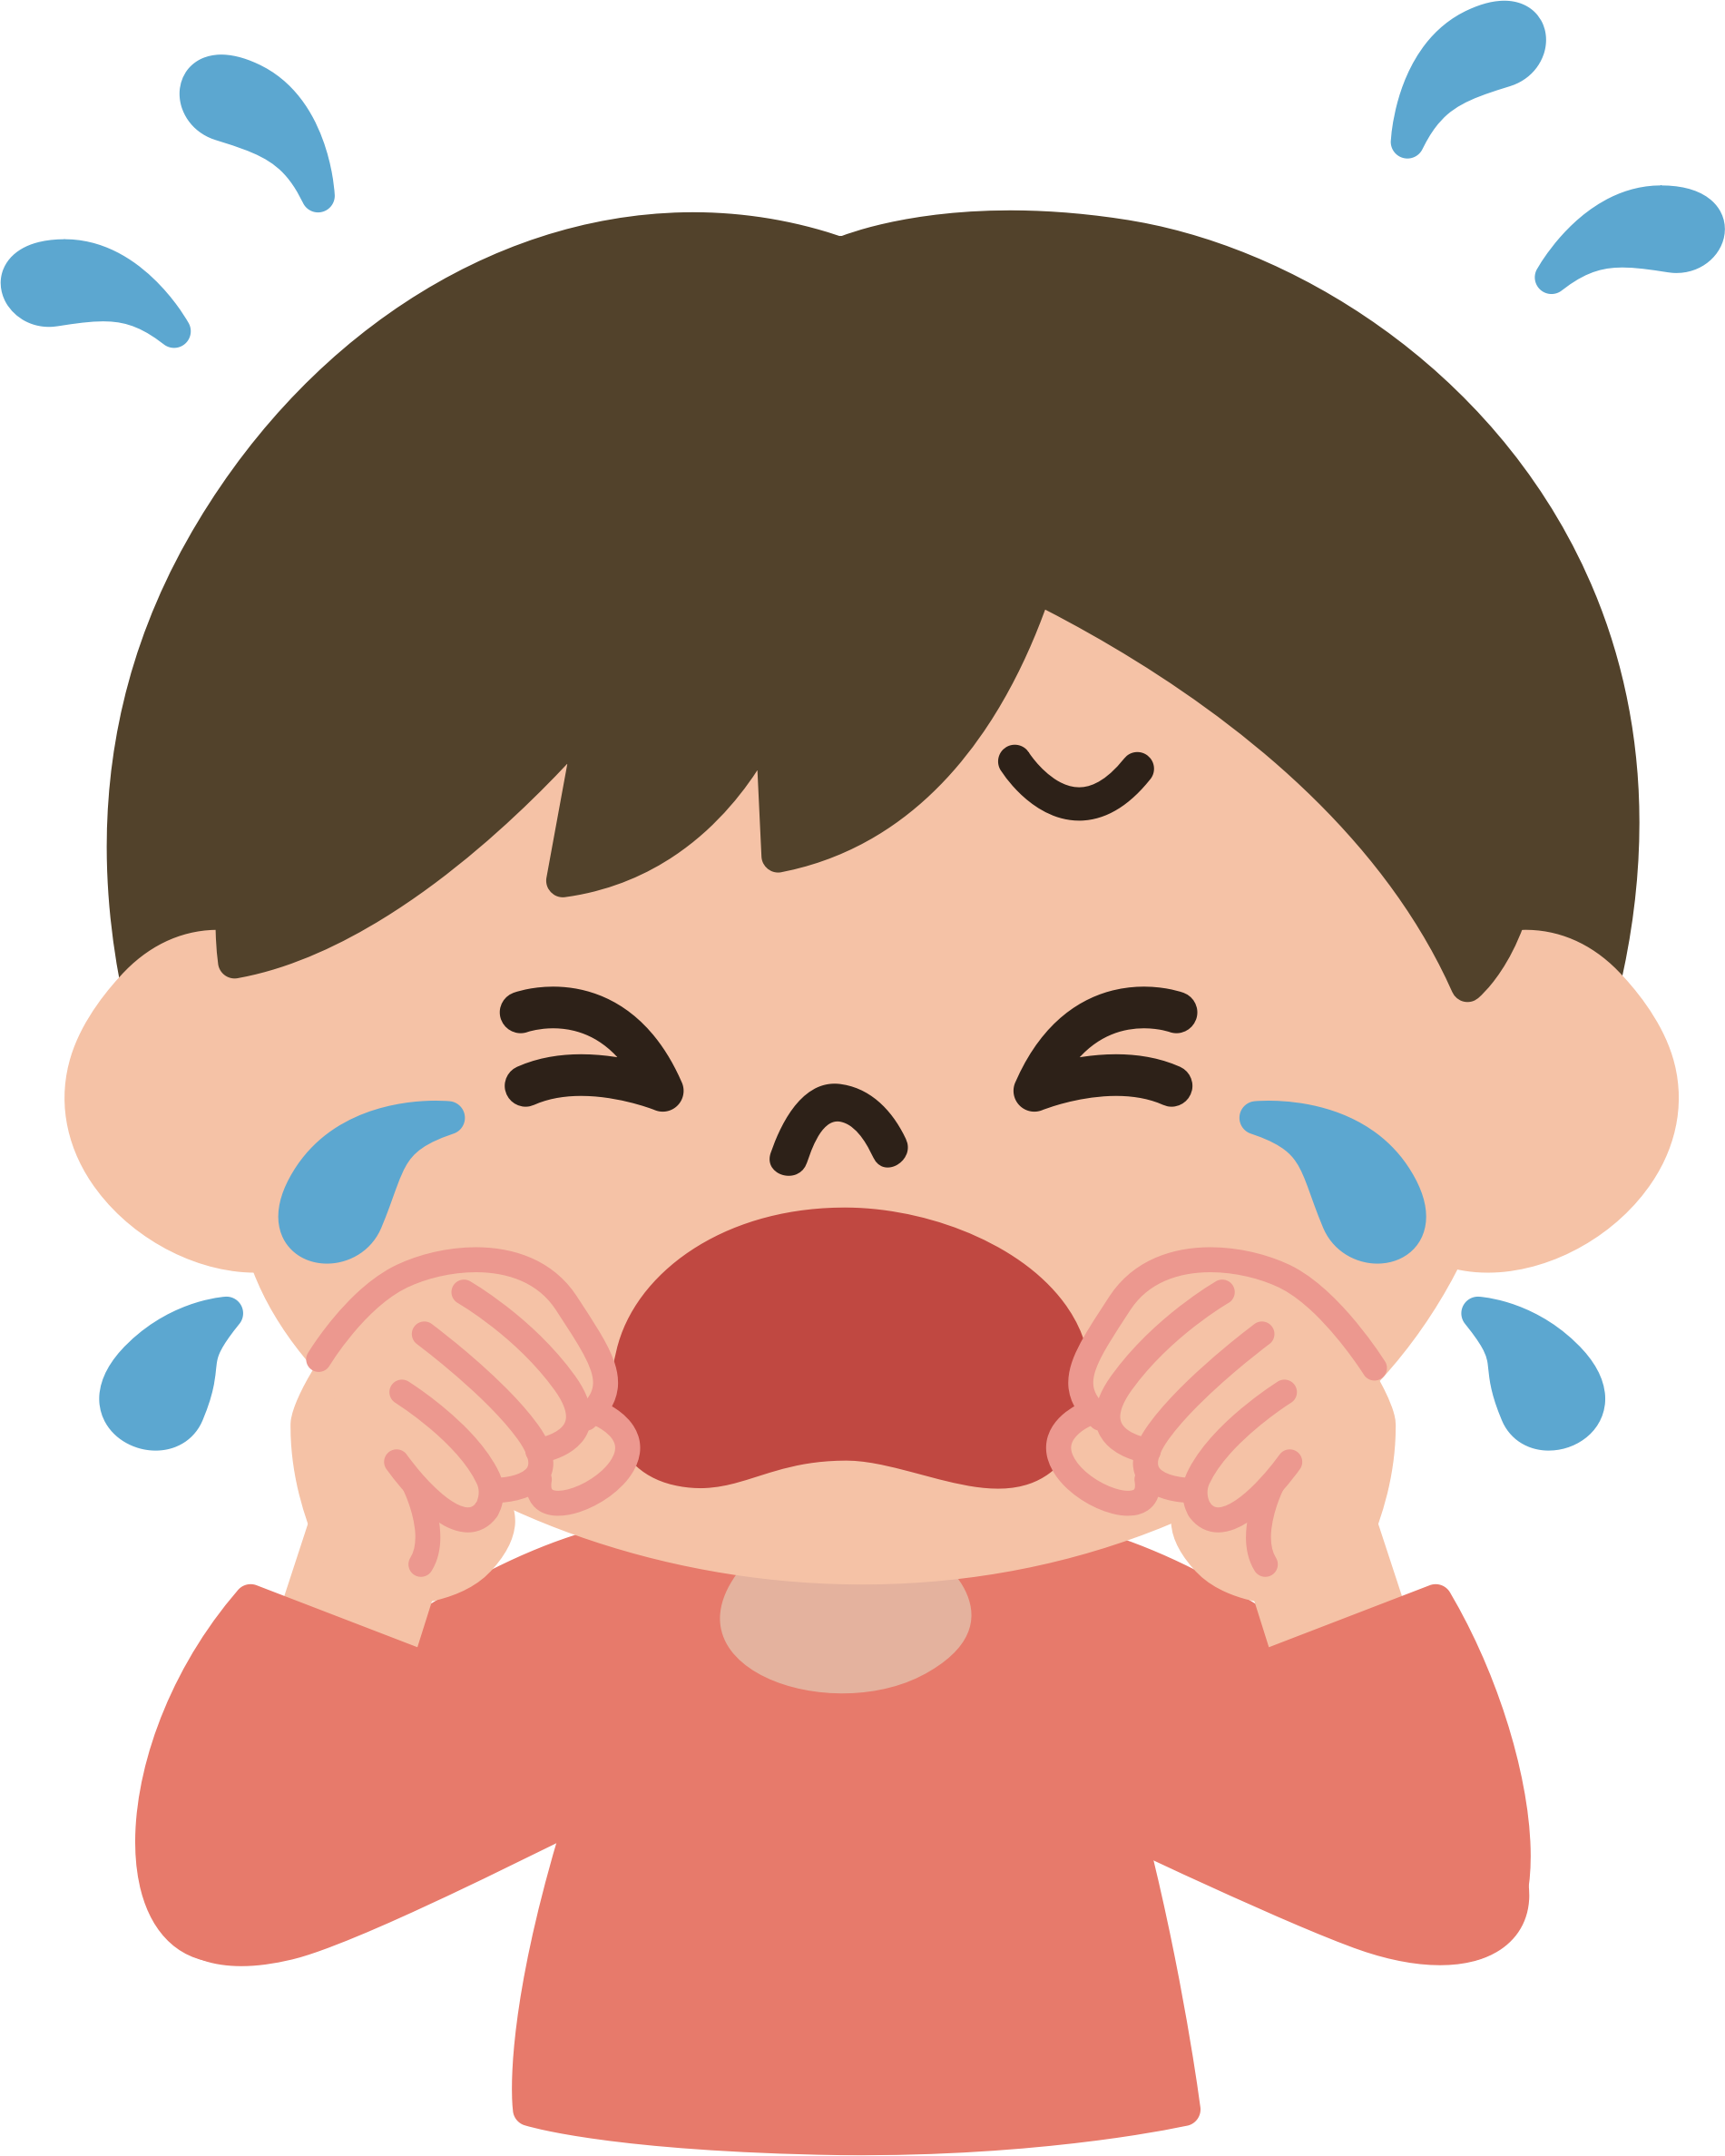 clipart Male big image png. Crying boy clipart